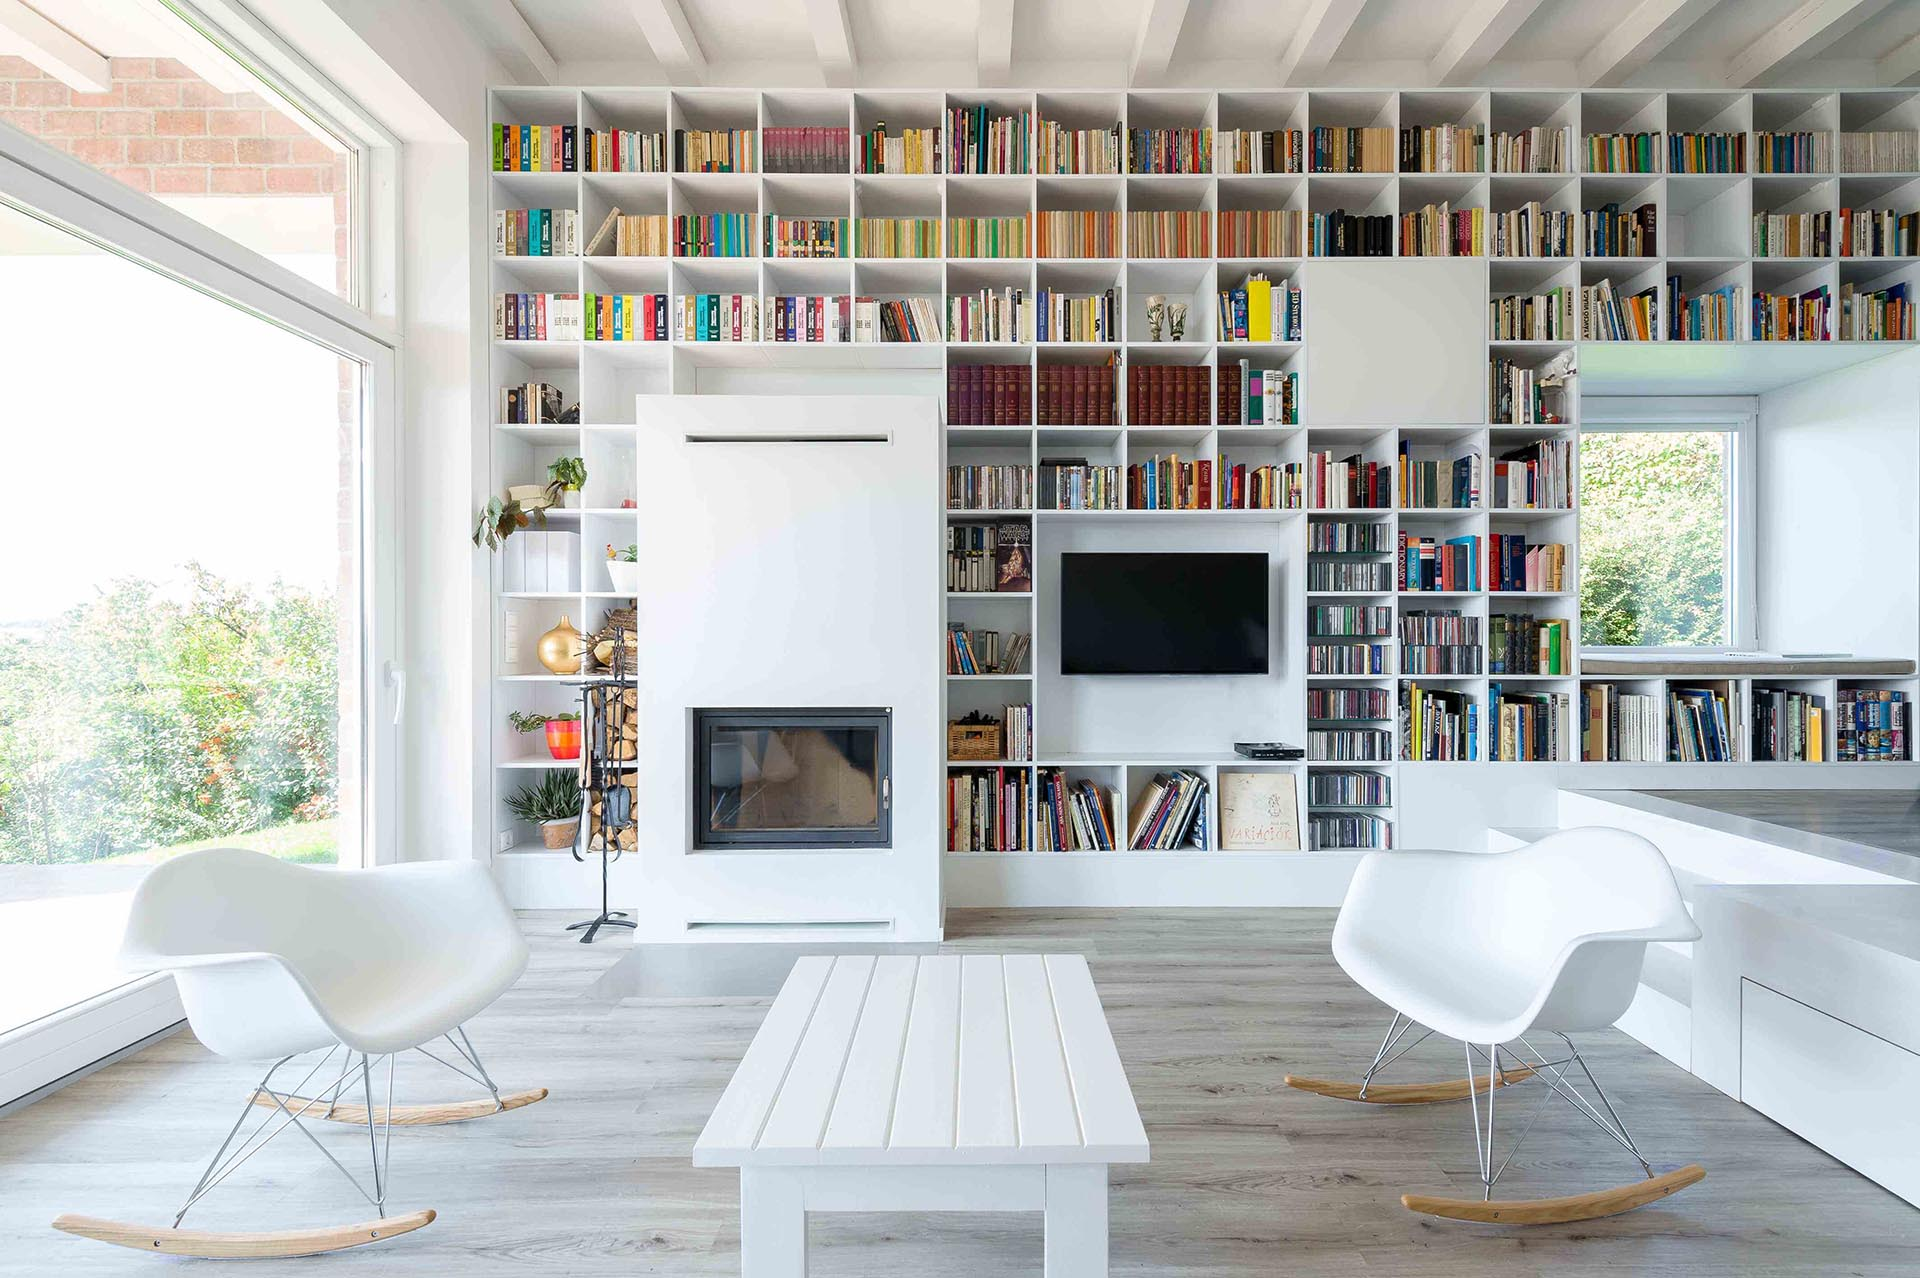 This Long Wall Of Shelving Incorporates Storage, A Fireplace, Windows, And Seating